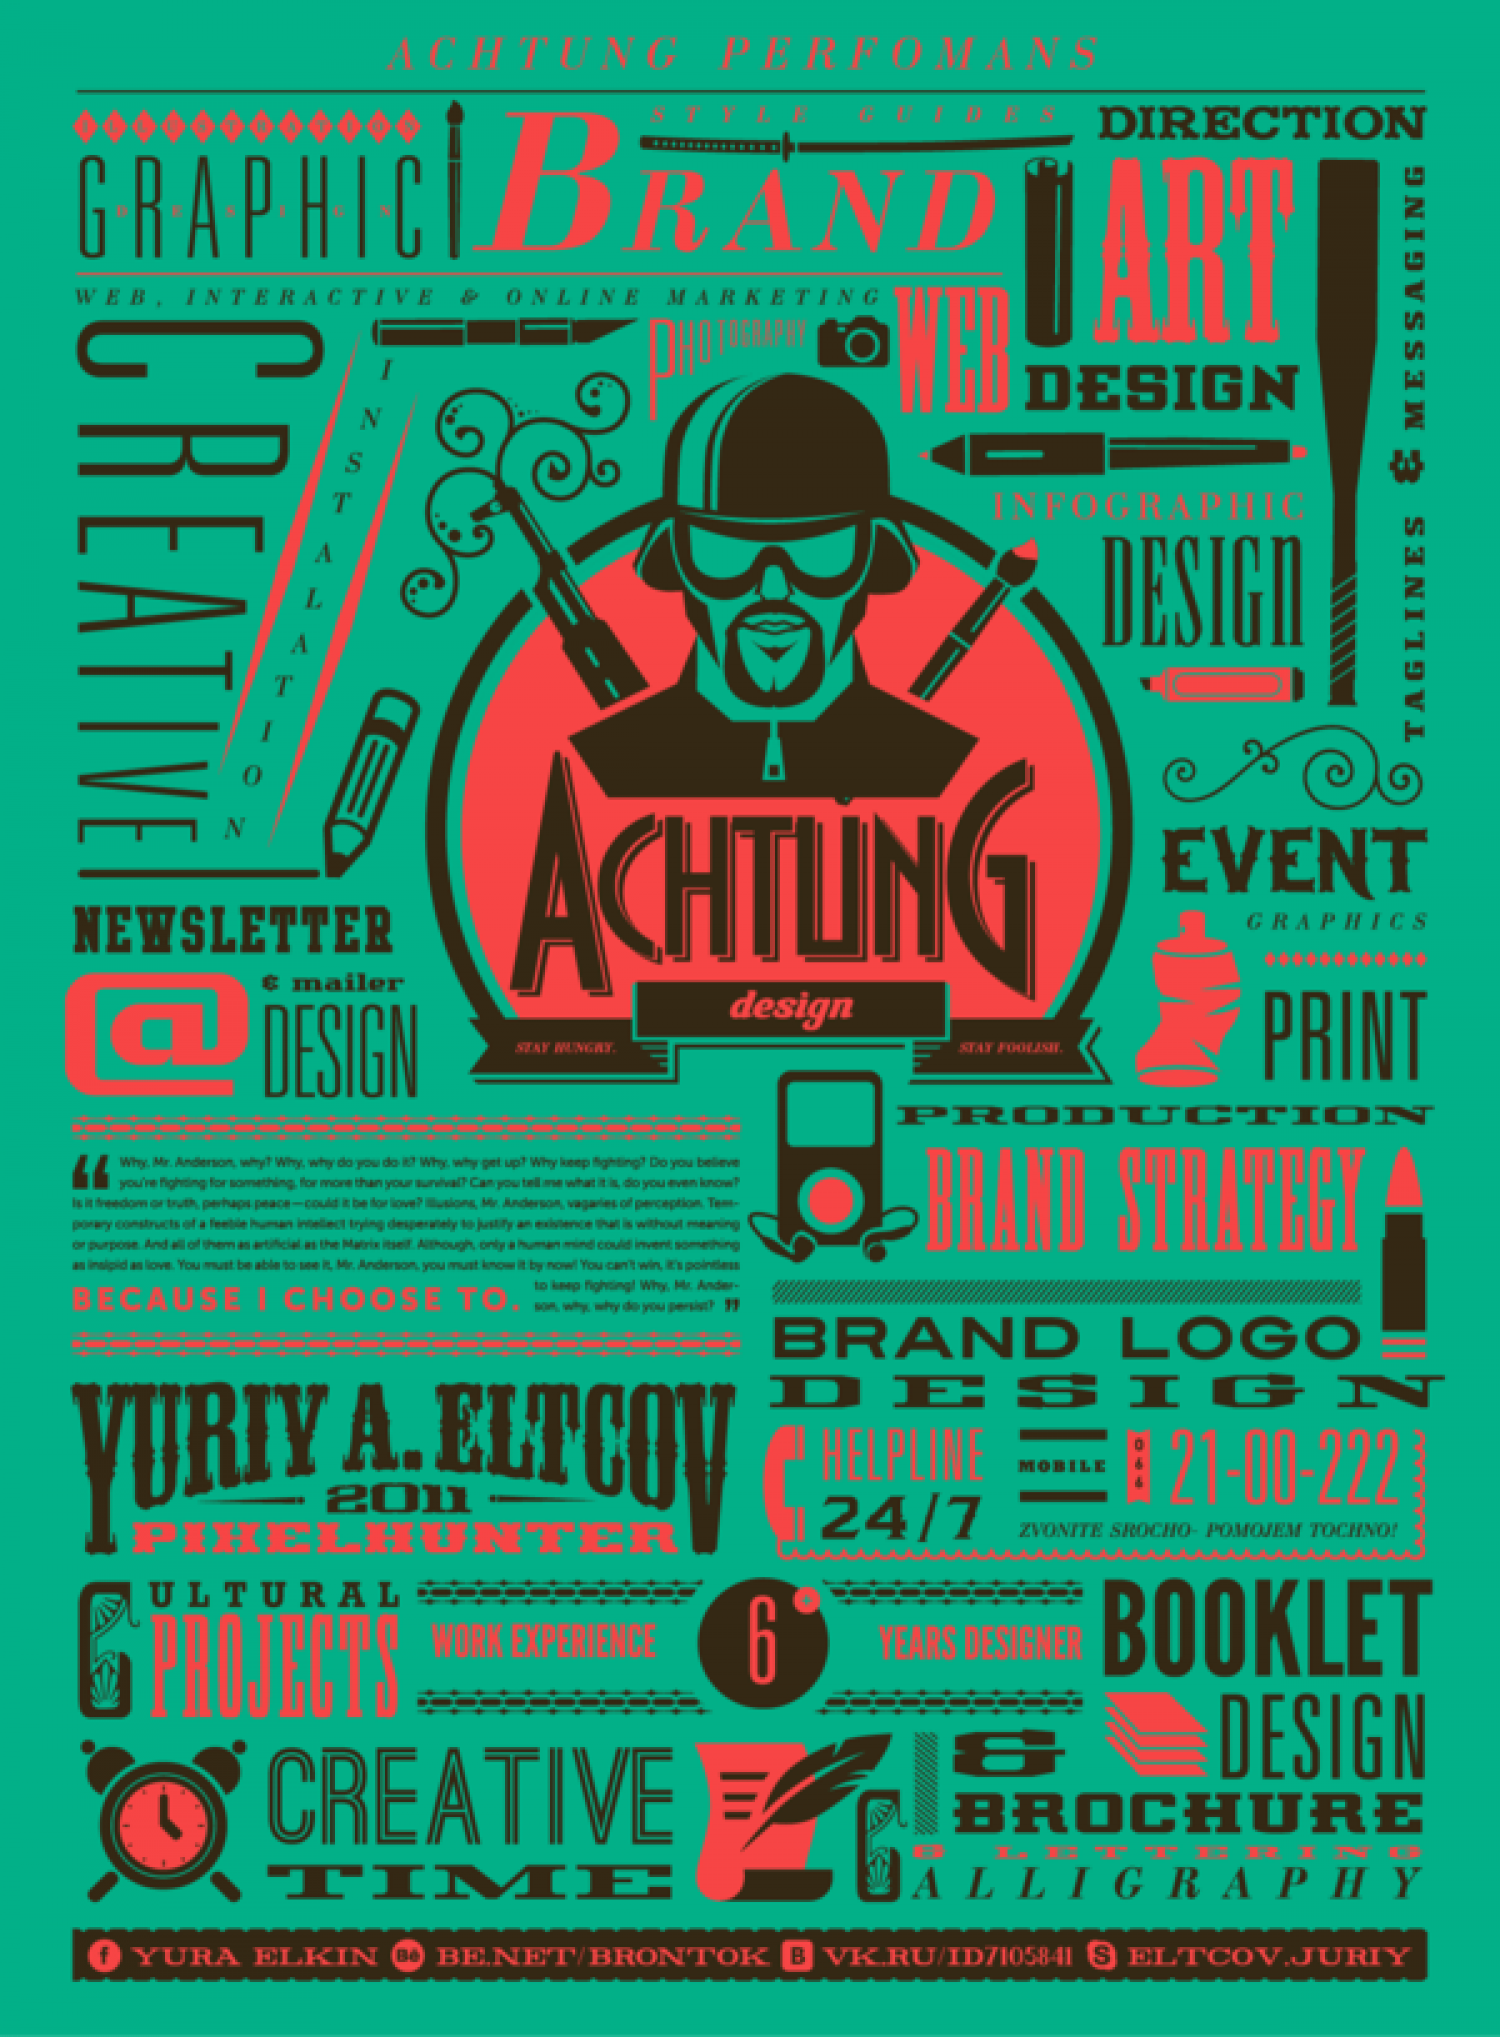 Achtung Design Infographic